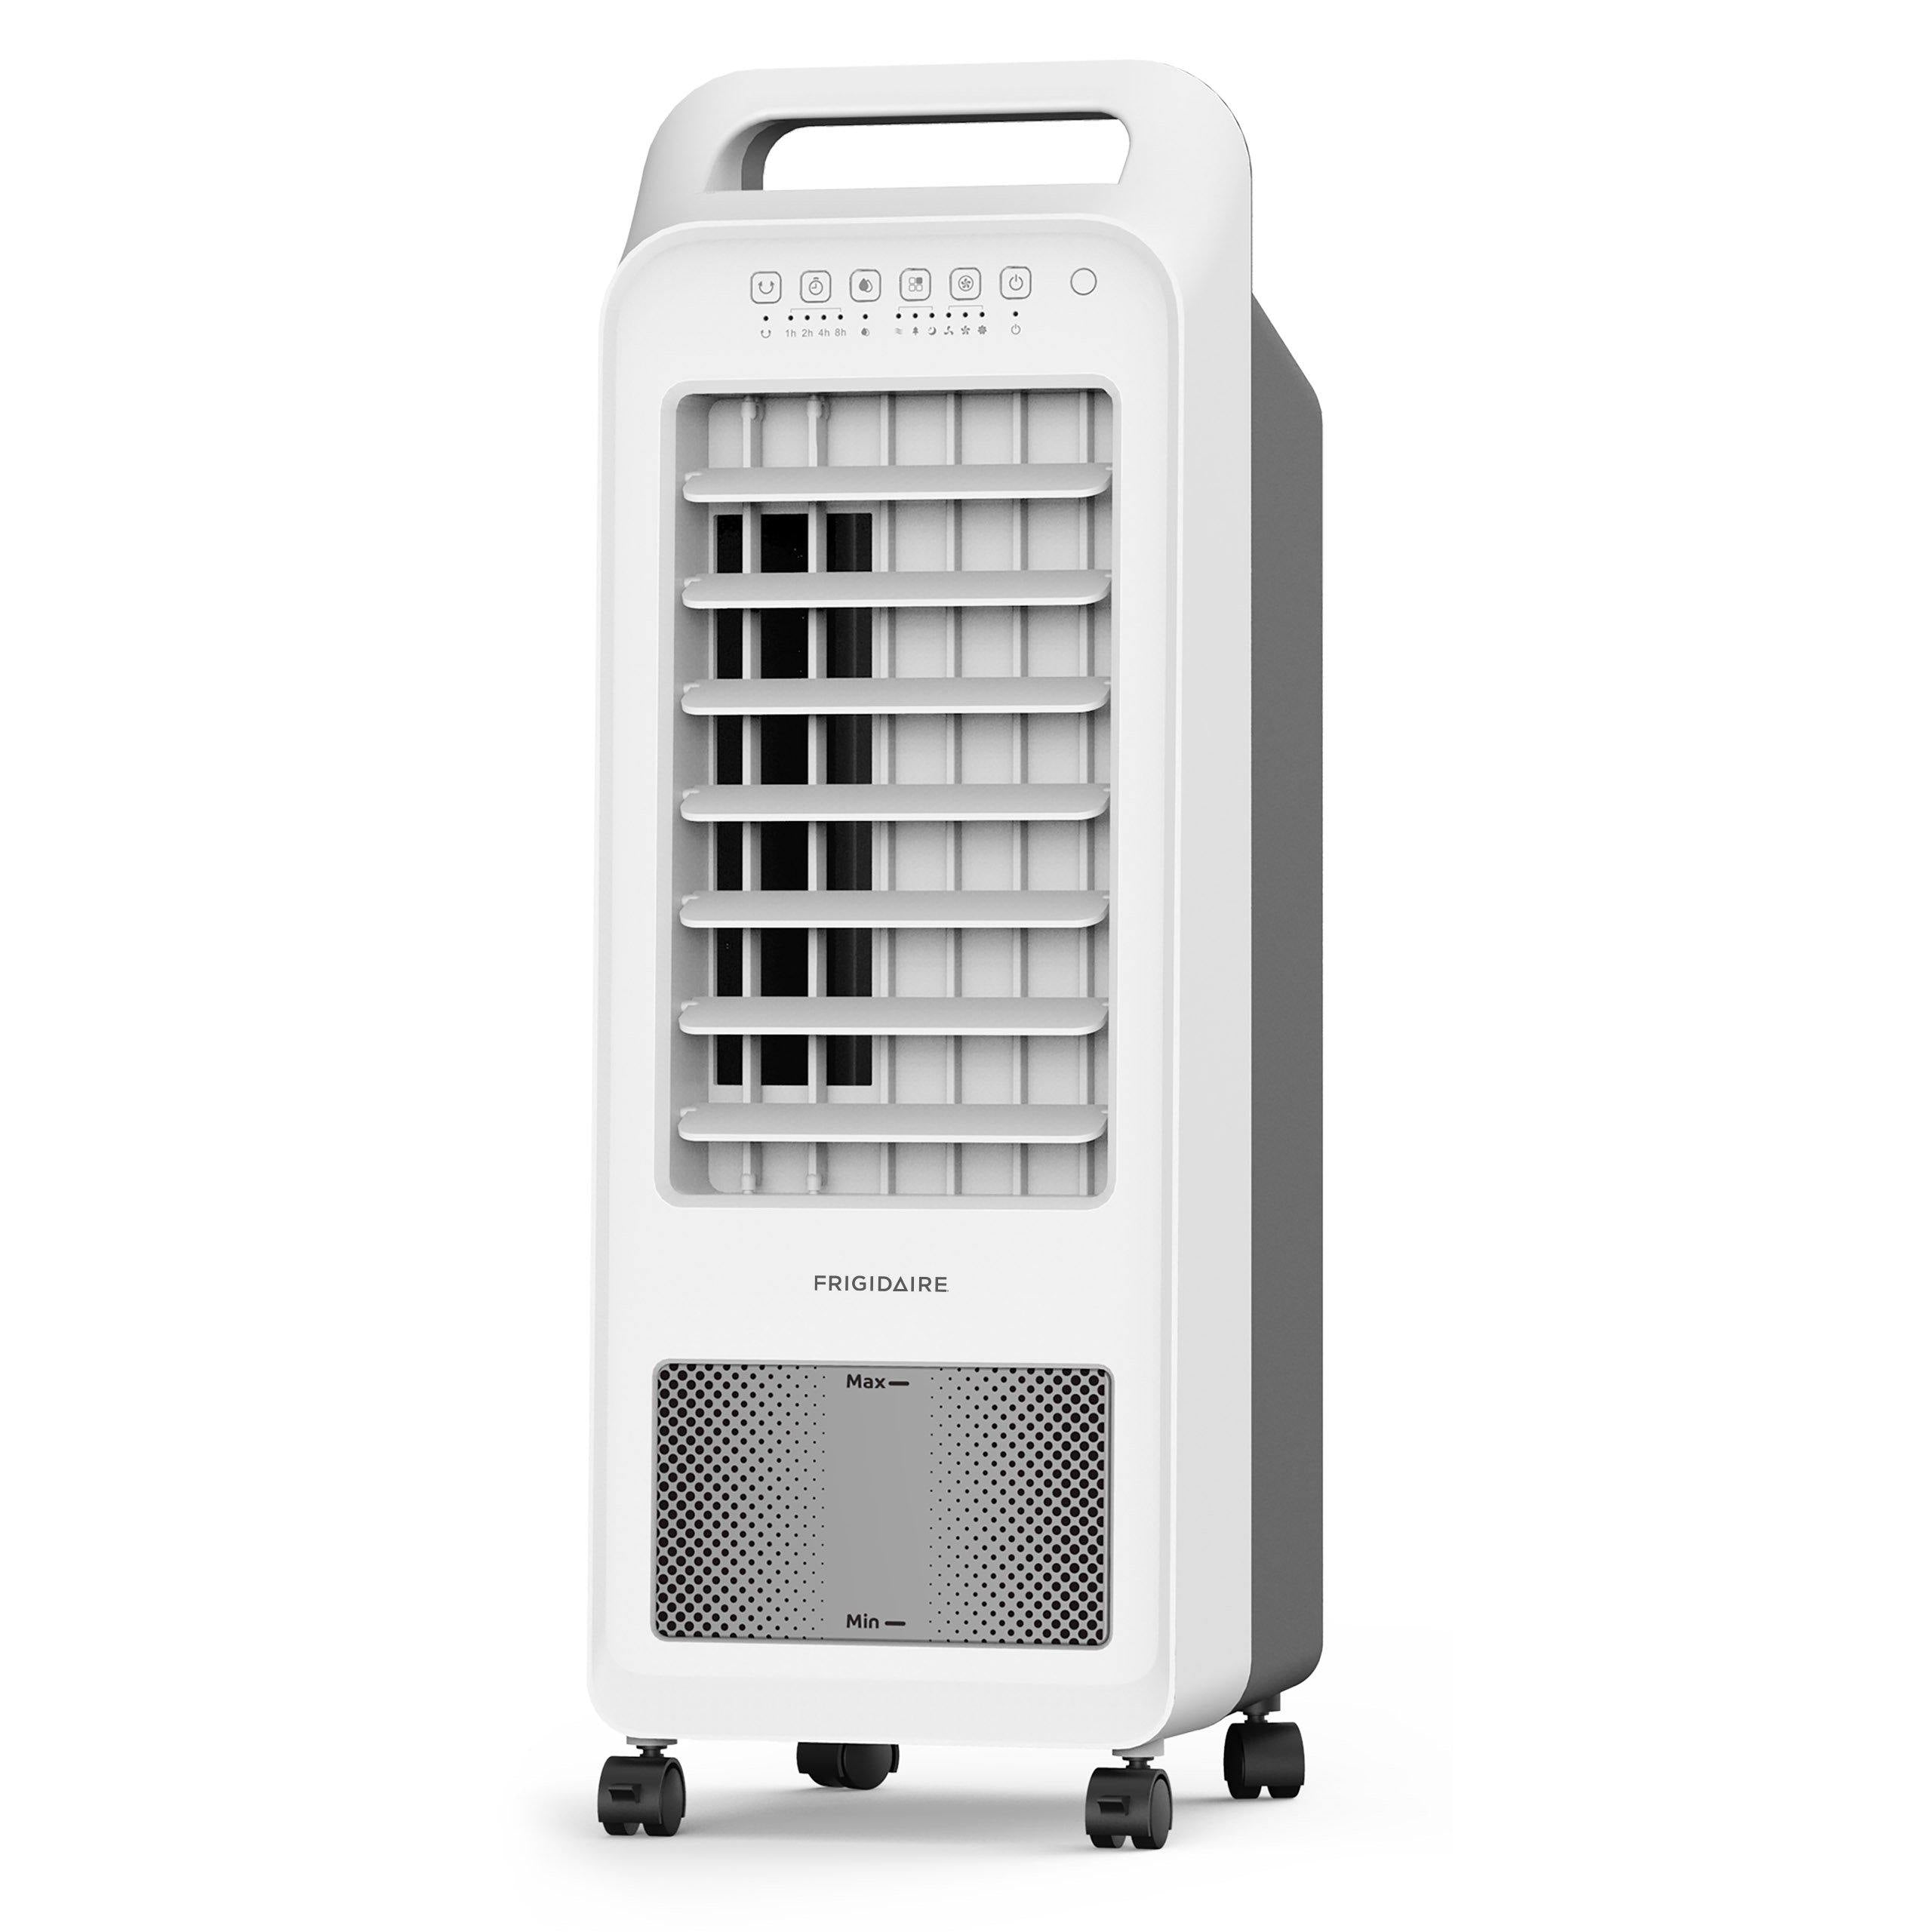 Frigidaire_2in1_Personal_Evaporative_Air_Cooler_and_Fan_100_sq_ft_with_Compact_Design_&_Removable_Water_Tank